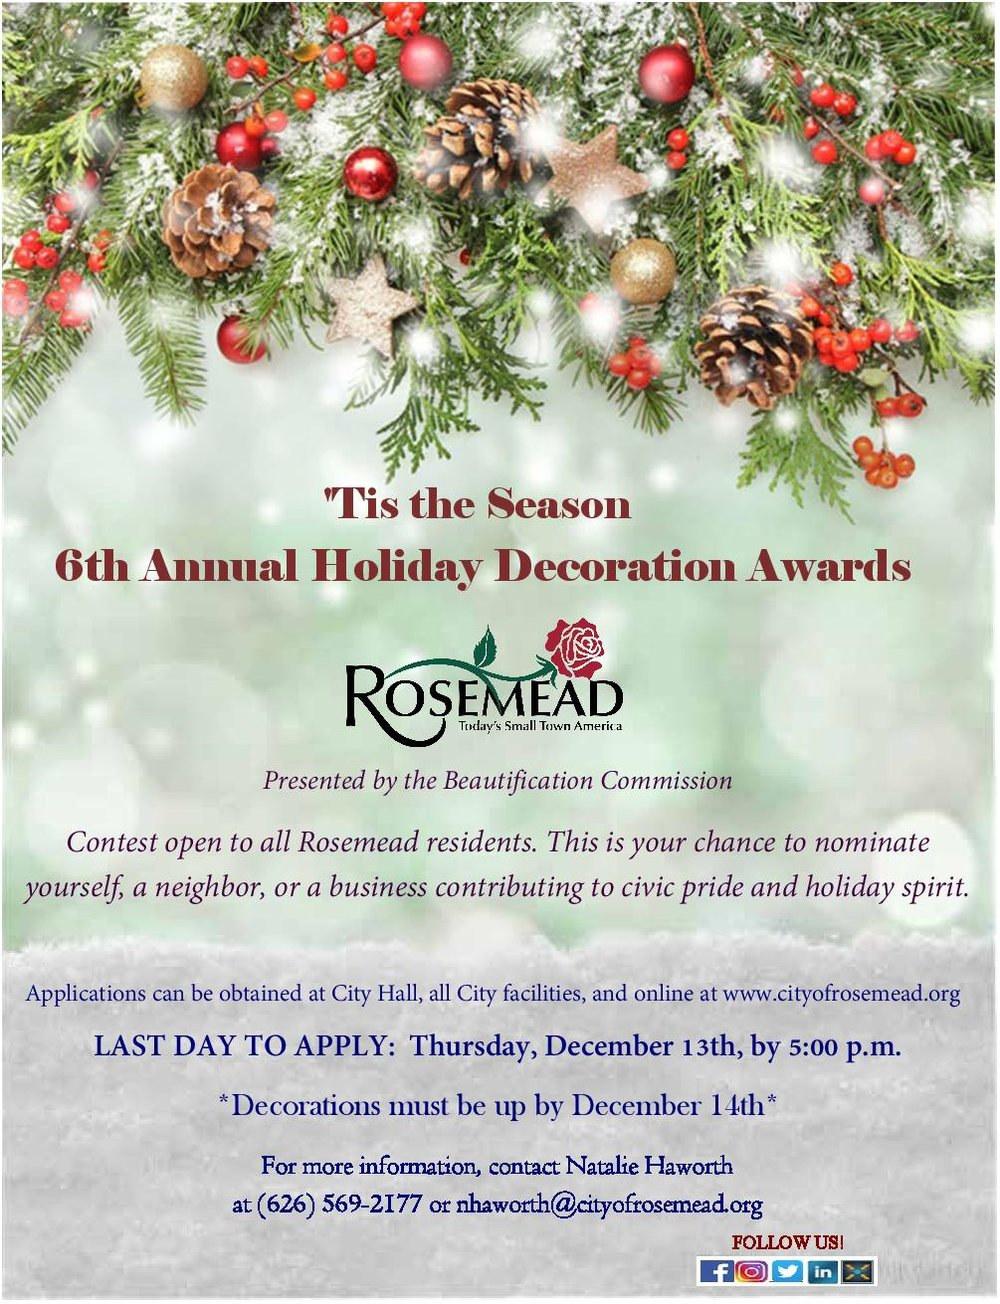 6th annual holiday decoration awards - Submit applications by December 13th, 2018